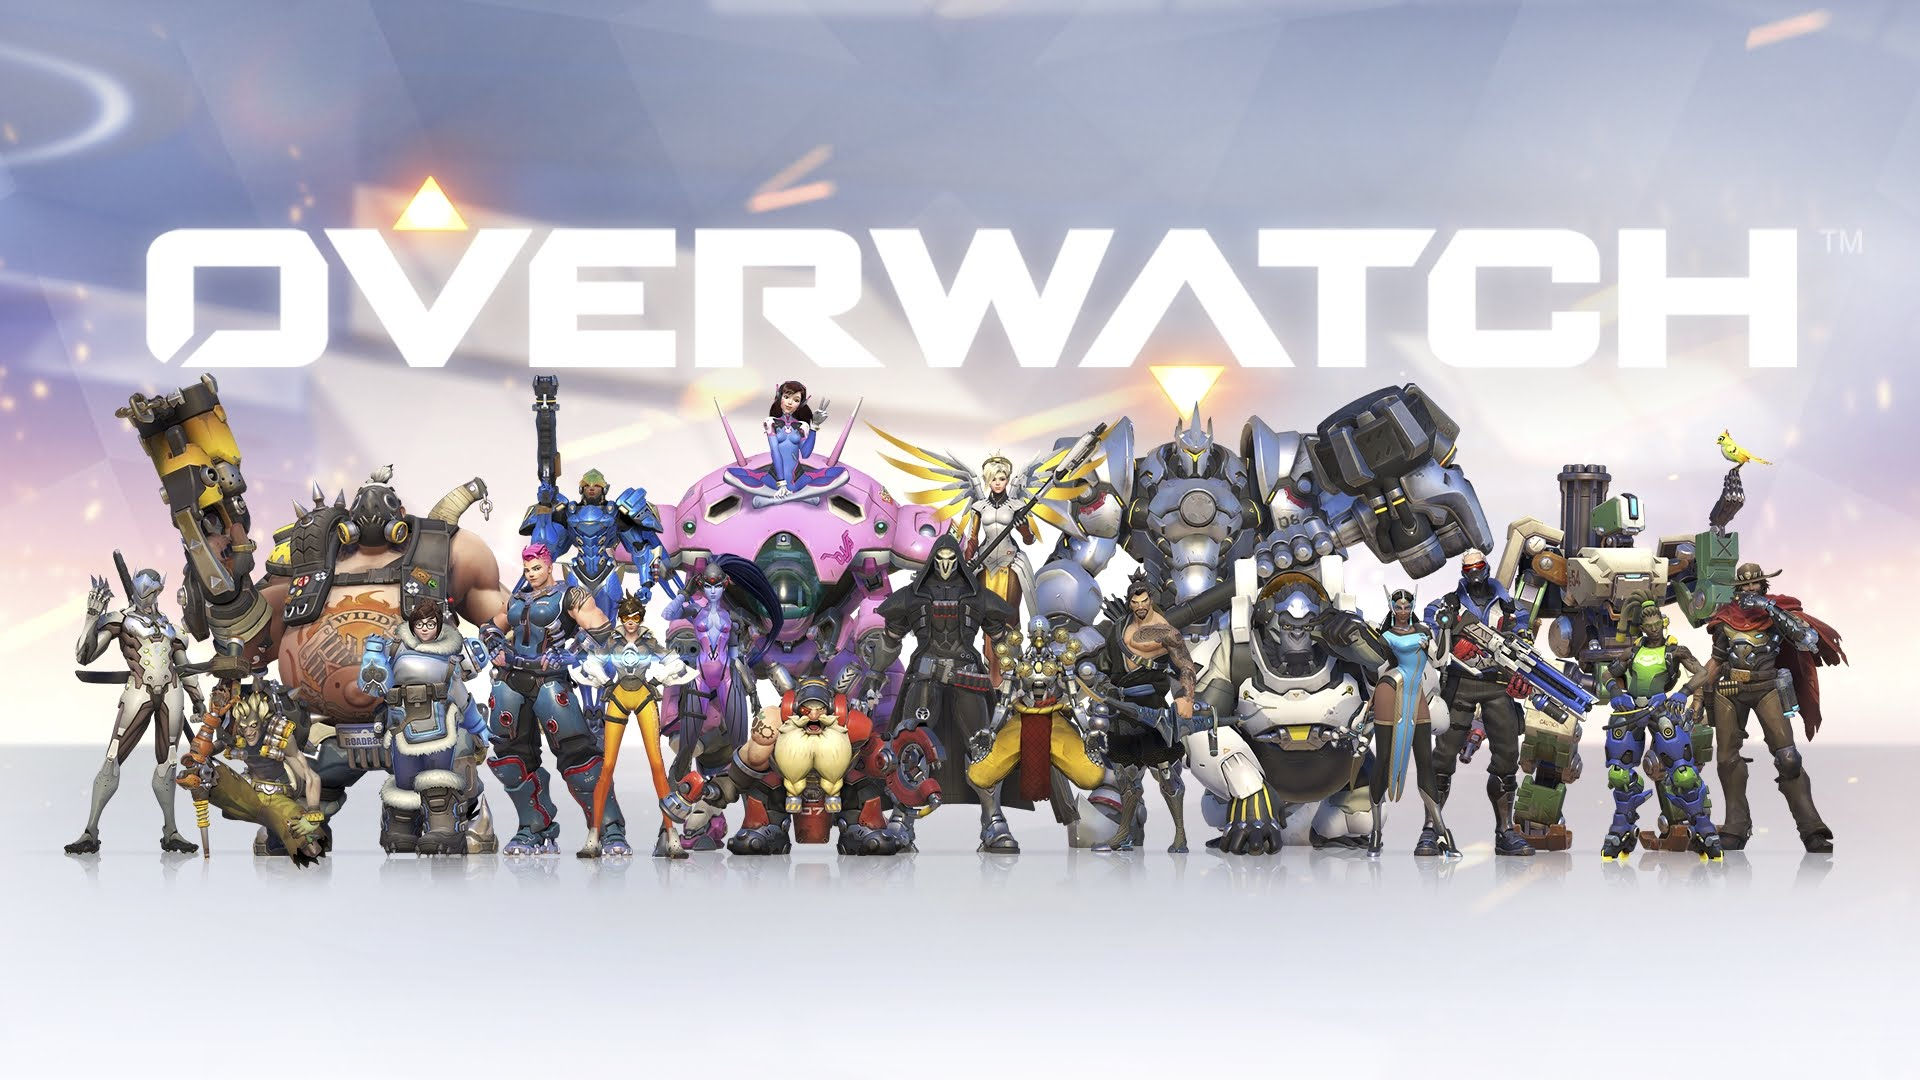 Overwatch is Blizzard Entertainment's new team shooter, and it features a colorful cast of 21 heroes to play as.